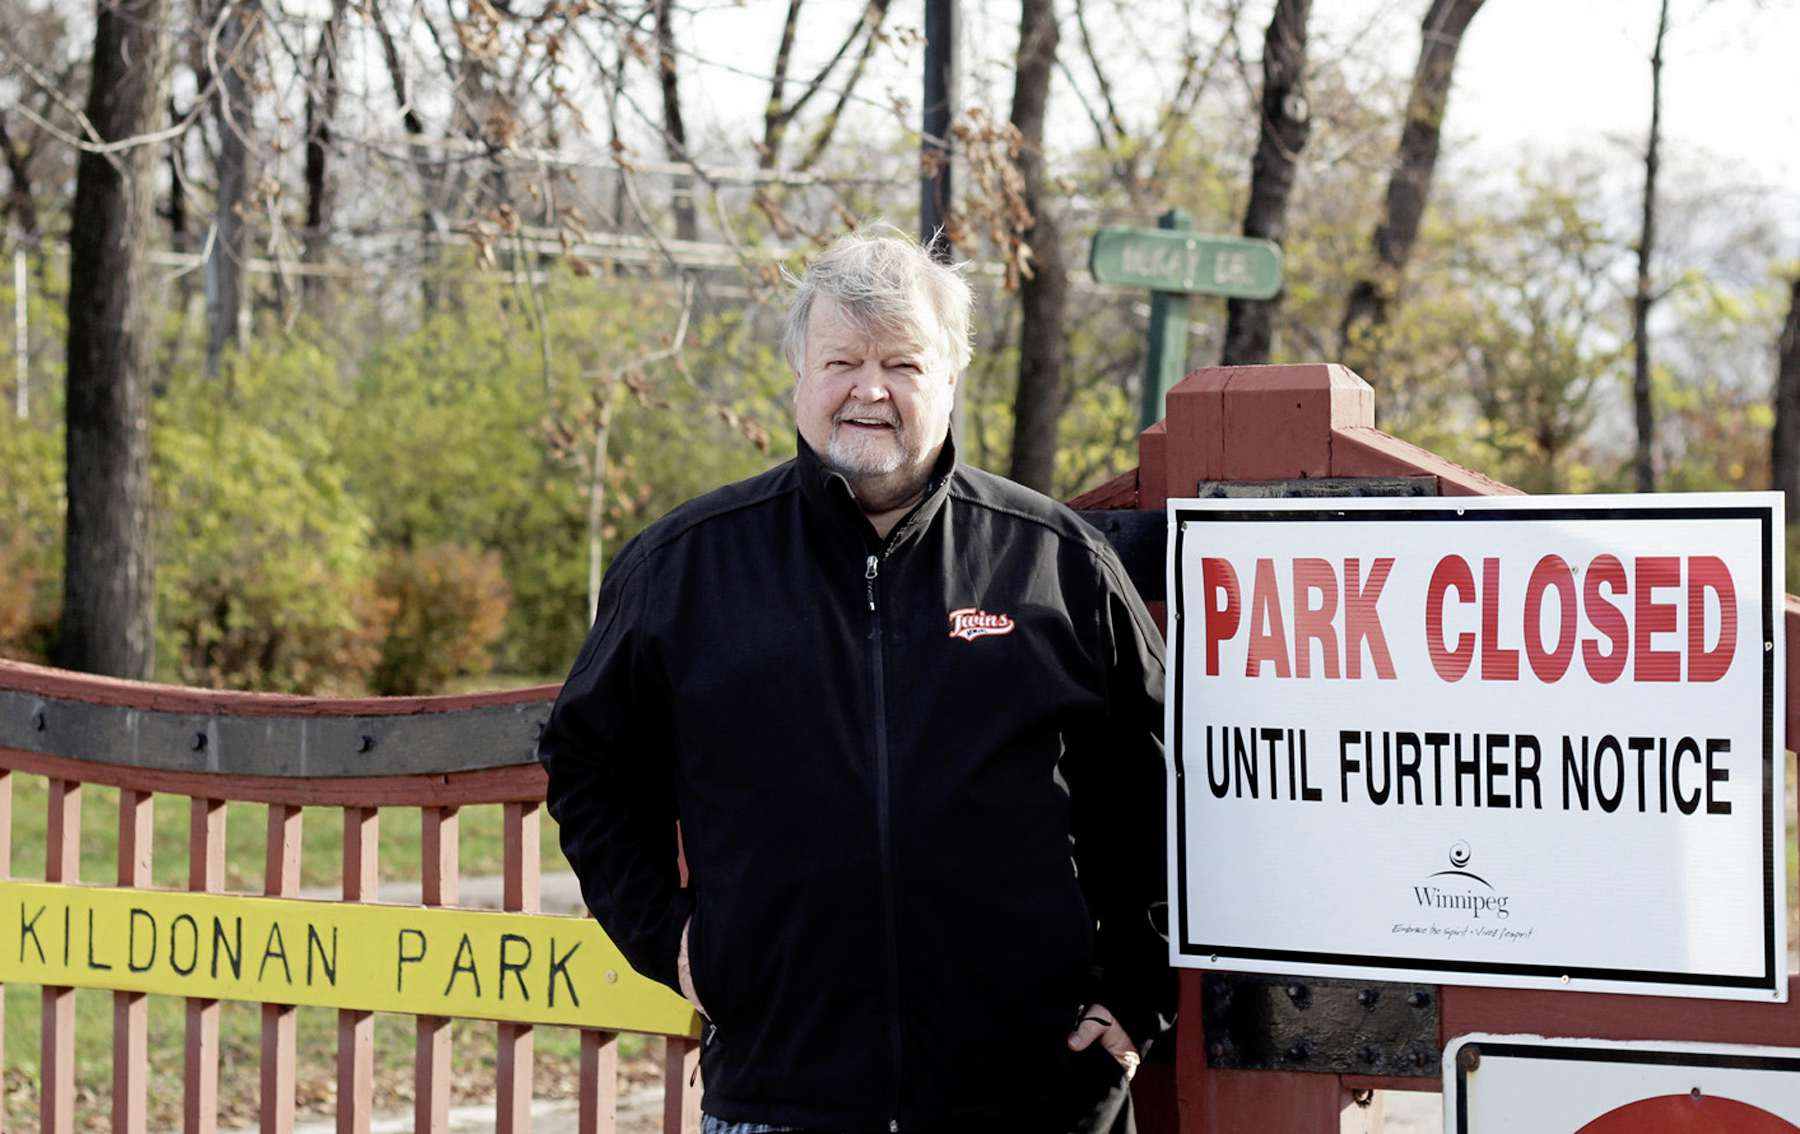 Doug Stephen is the president of WOW Hospitality Concepts, which owns Prairie's Edge restaurant in Kildonan Park. He said the business faces permanent closure if the park isn't re-opened soon.